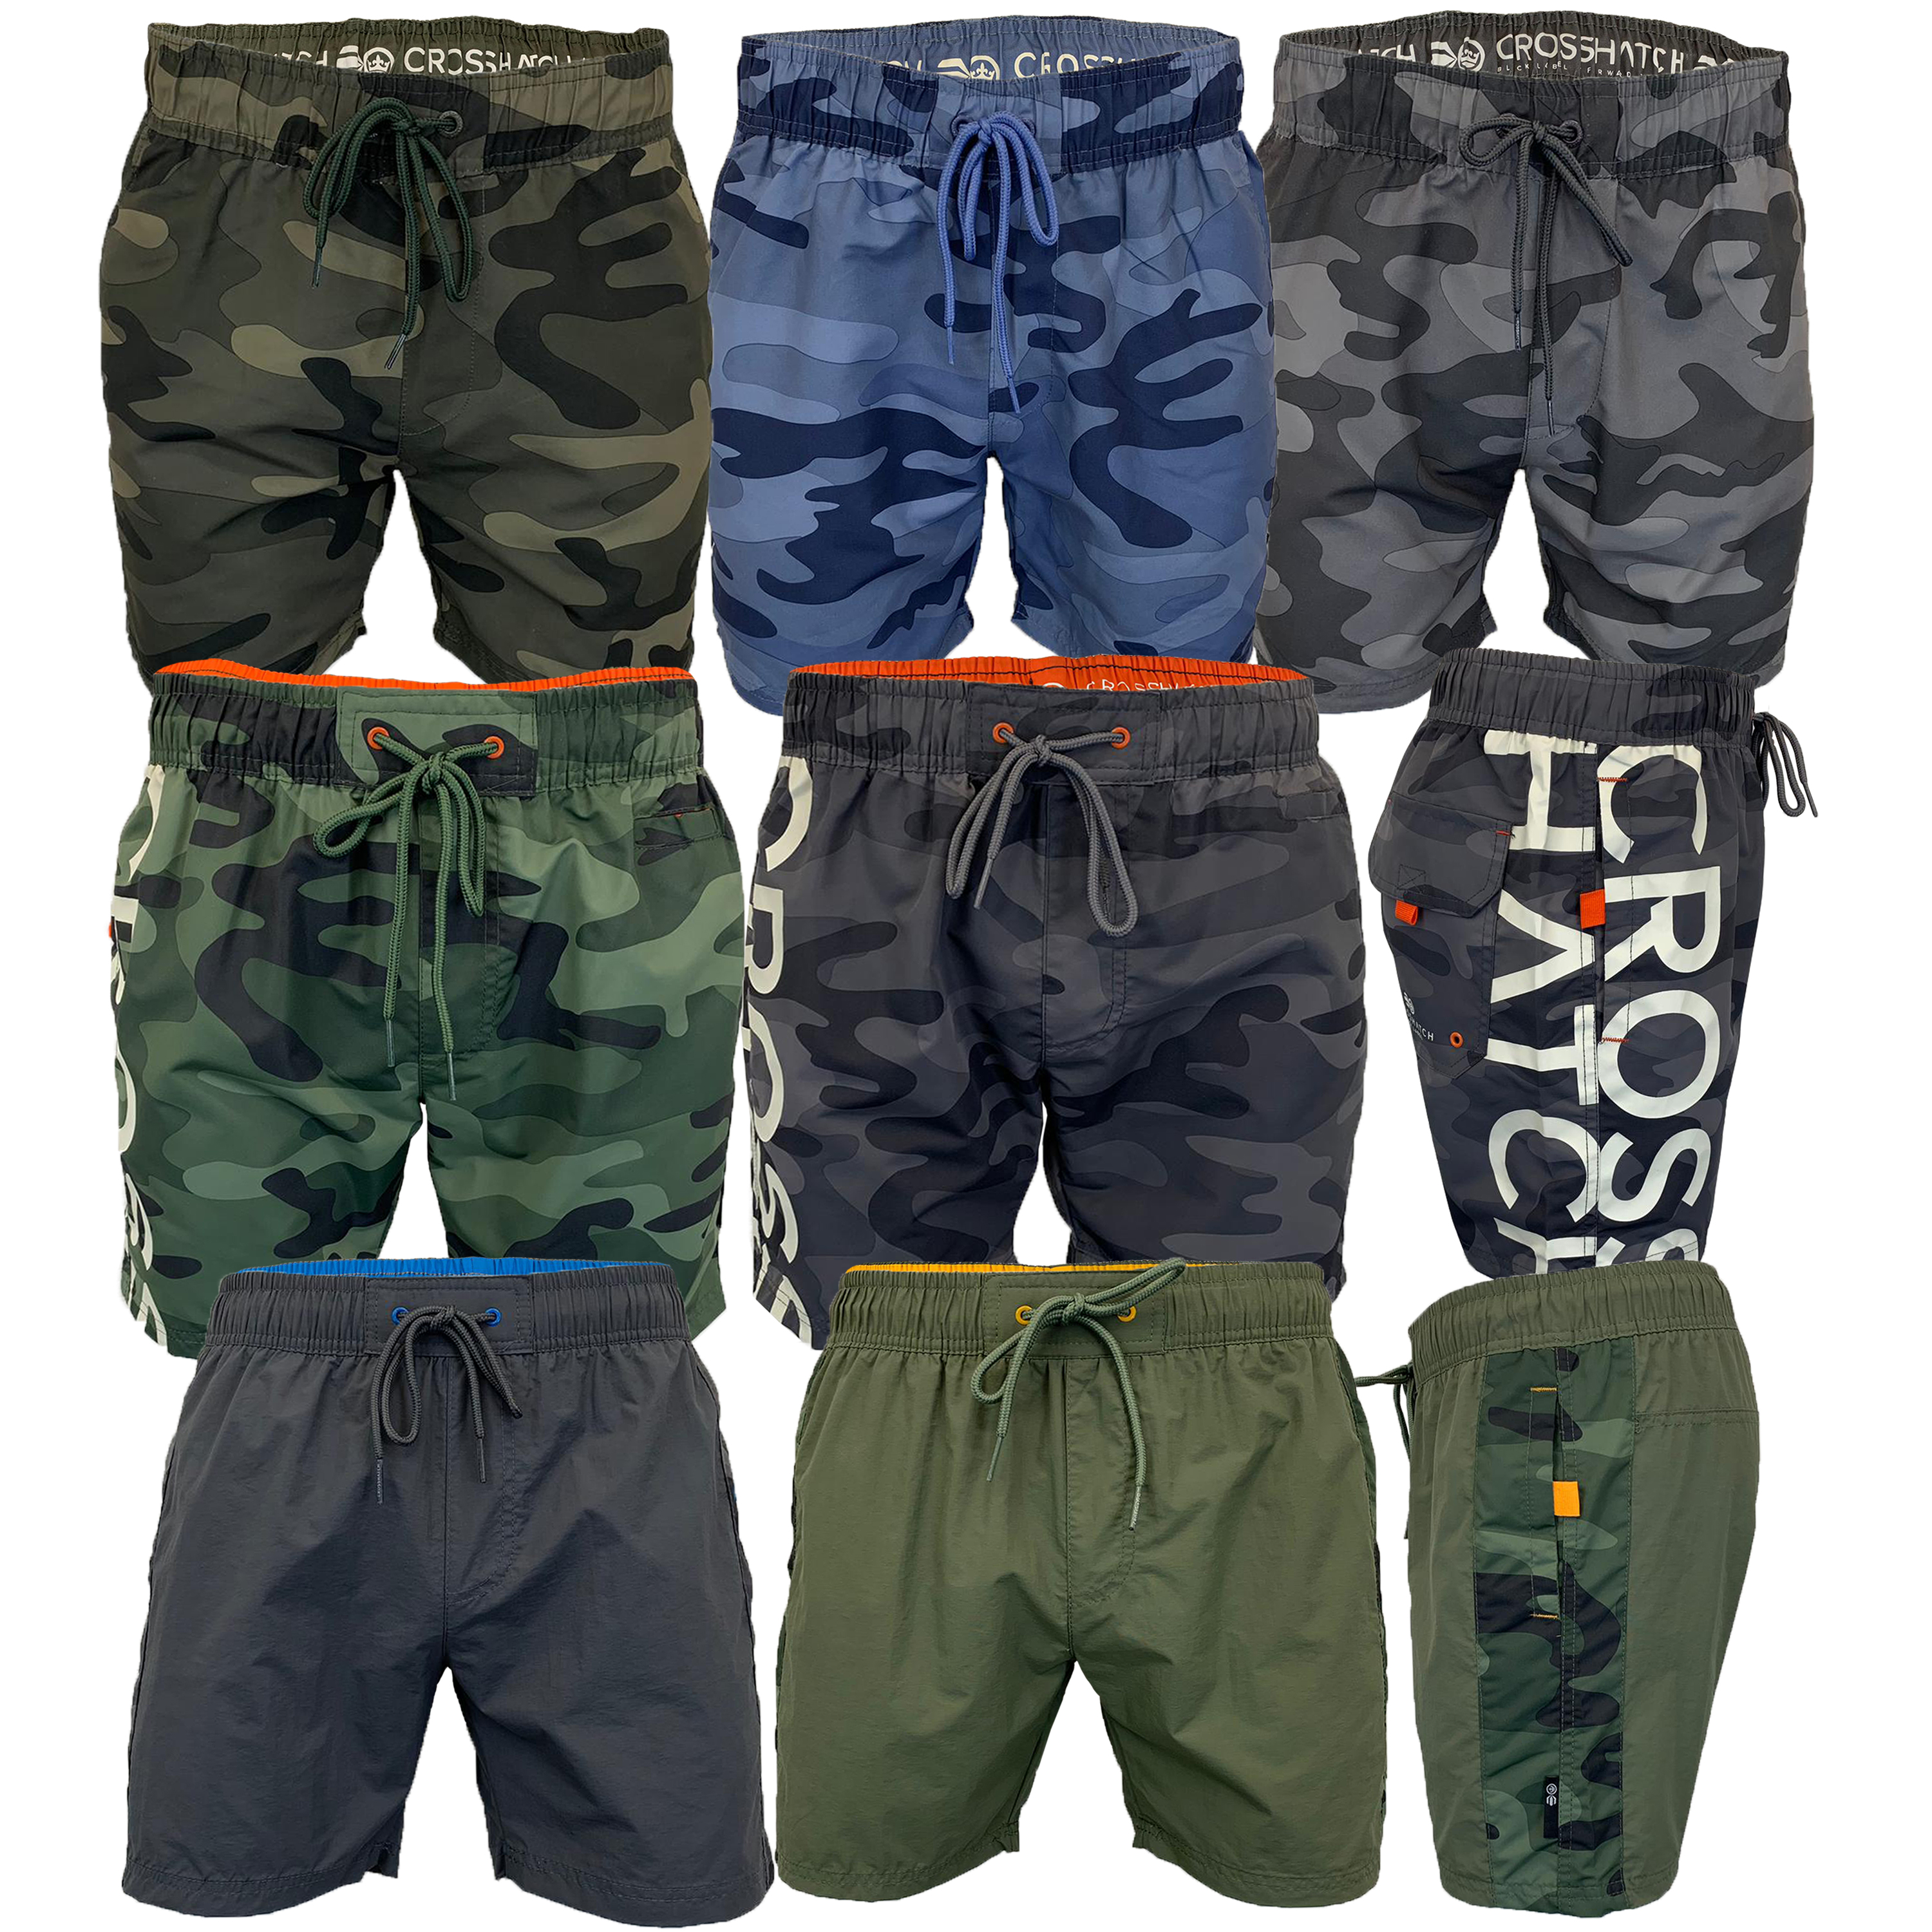 Mens-Camouflage-Swim-Shorts-Crosshatch-Army-Military-Knee-Length-Casual-Summer thumbnail 4